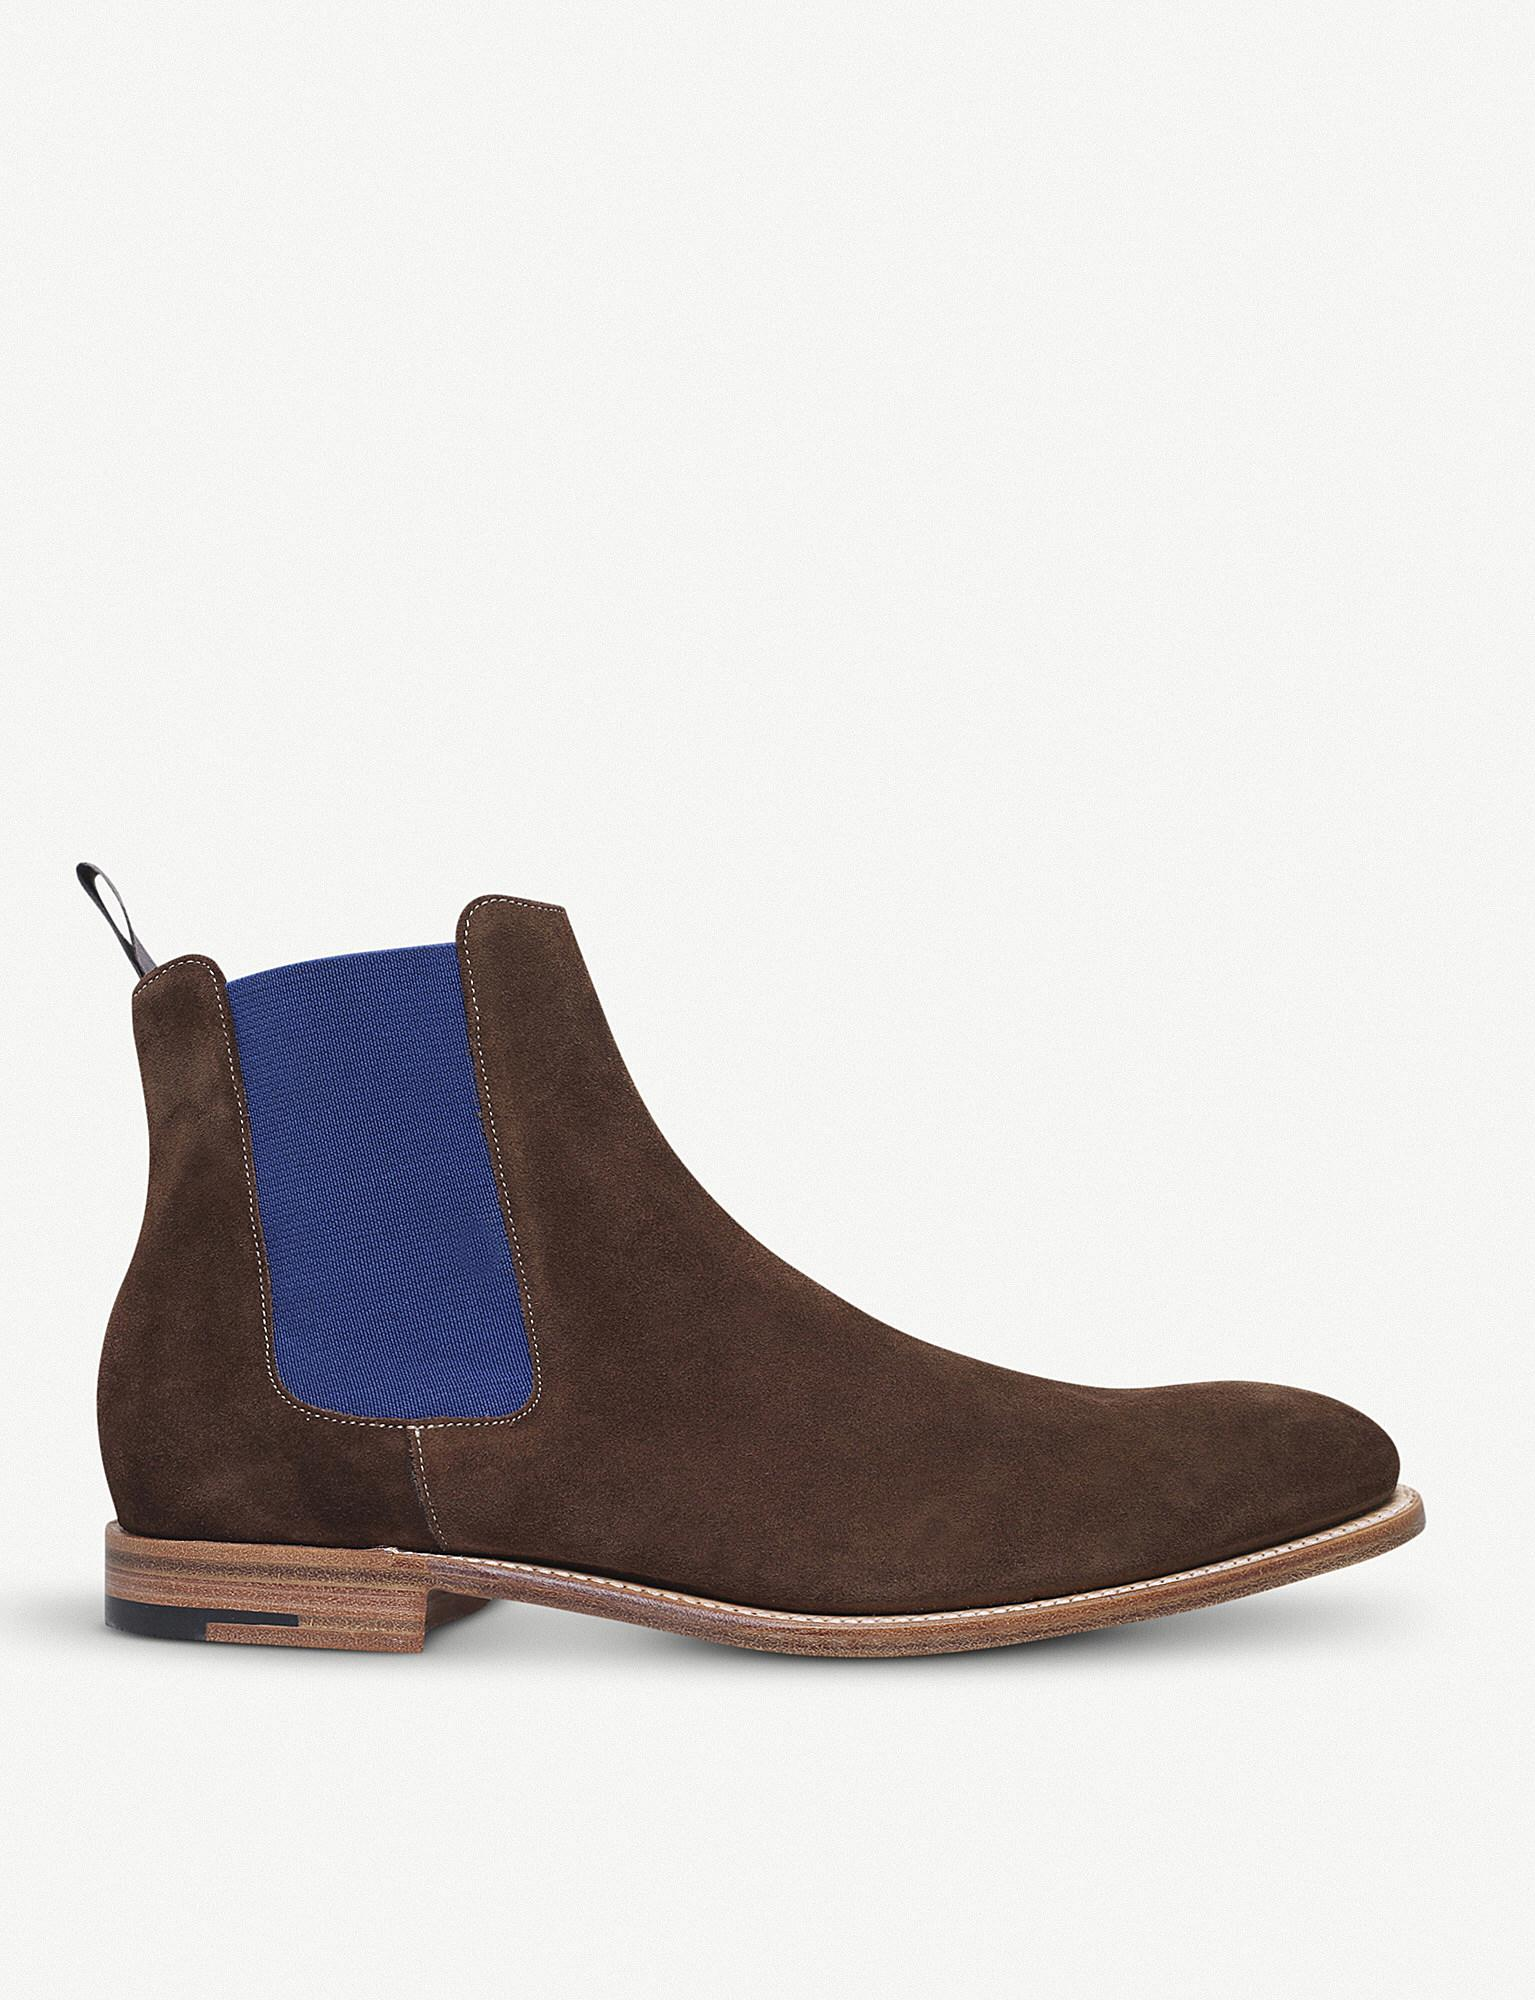 cacc668d717 Lyst - Barker Hopper Suede Chelsea Boots in Brown for Men